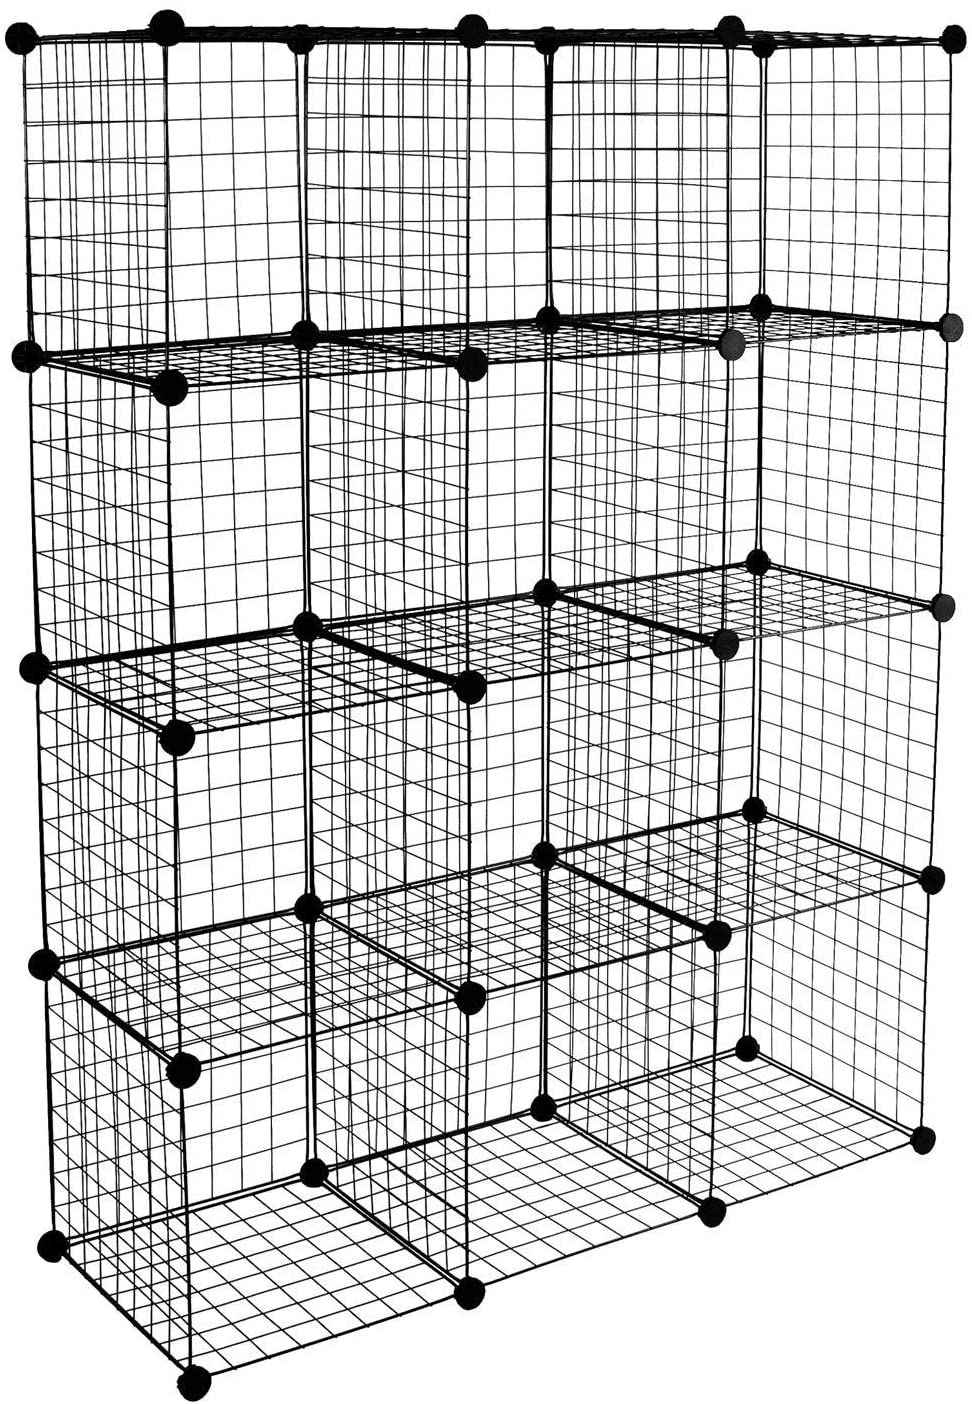 "Work-It! Wire Storage Cubes, 12-Cube Metal Grid Organizer | Modular Wire Shelving Units, Stackable Bookcase, DIY Closet Cabinet Organizer for Home, Office, Kids Room | 14"" W x 14"" H, Black"